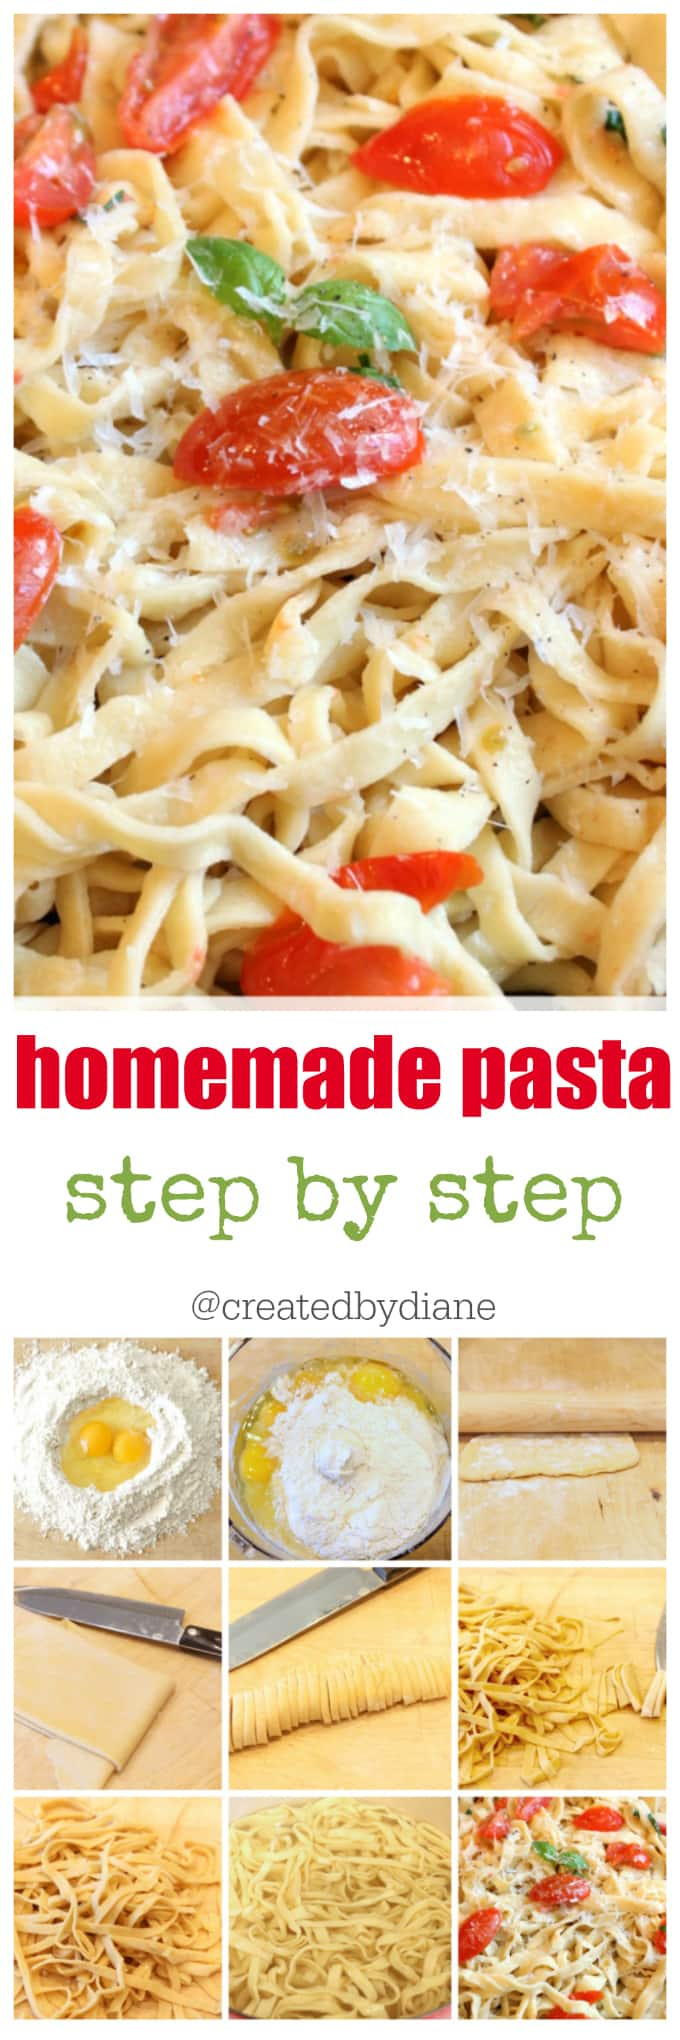 homemade pasta recipe and how to @createdbydiane